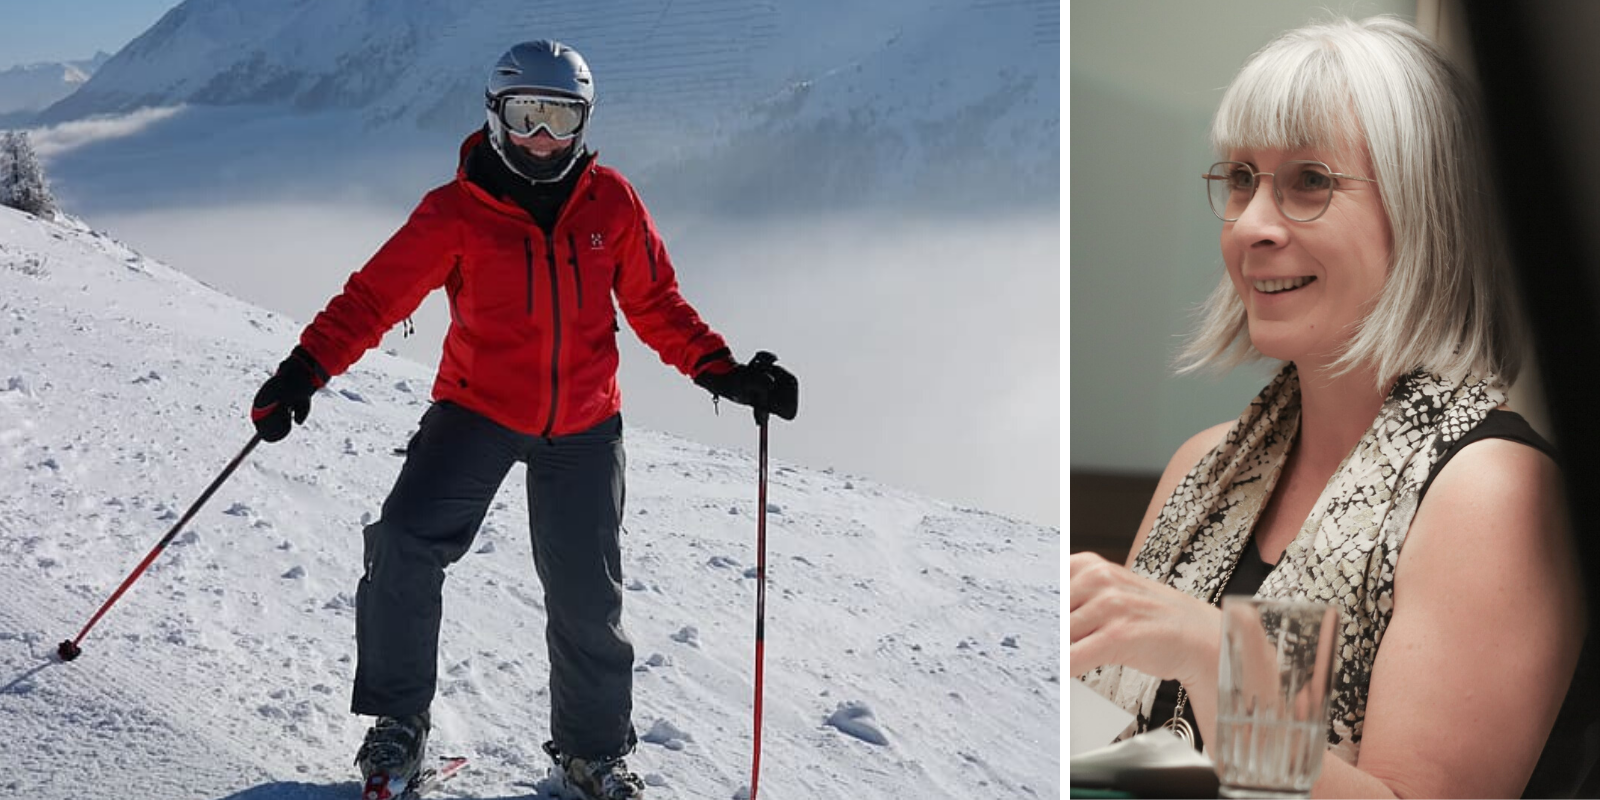 Trudeau's Public Health Agency pays non-refundable $300,000 deposit during global pandemic for ski resort trip